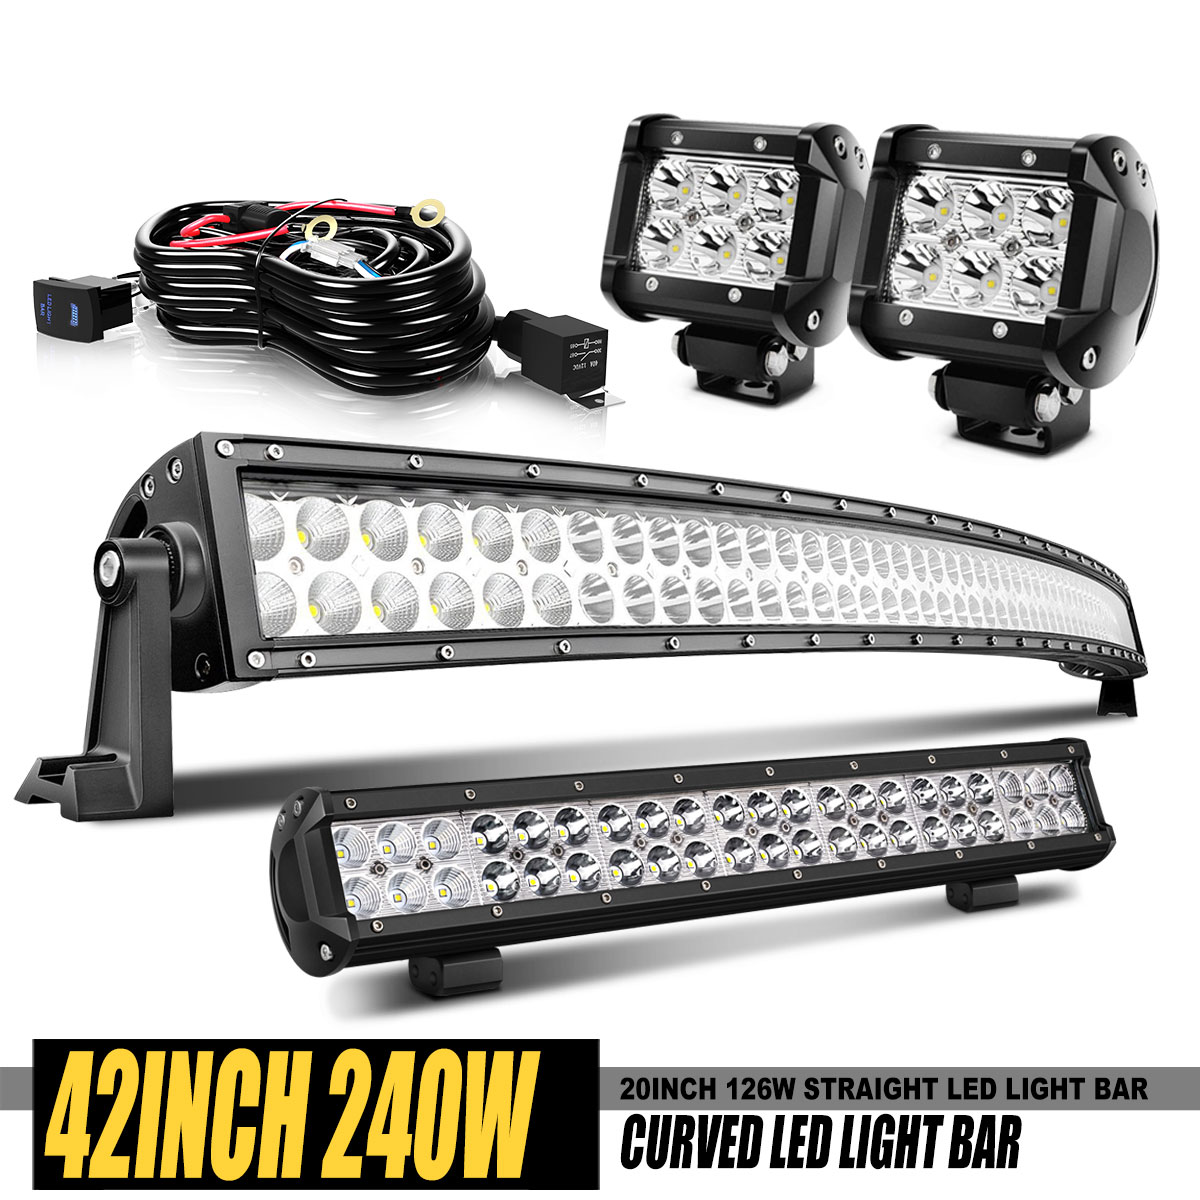 50inch 288W Curved LED Work Light Bar 42inch 240W+4X 18W Pods Offroad SUV 4WD